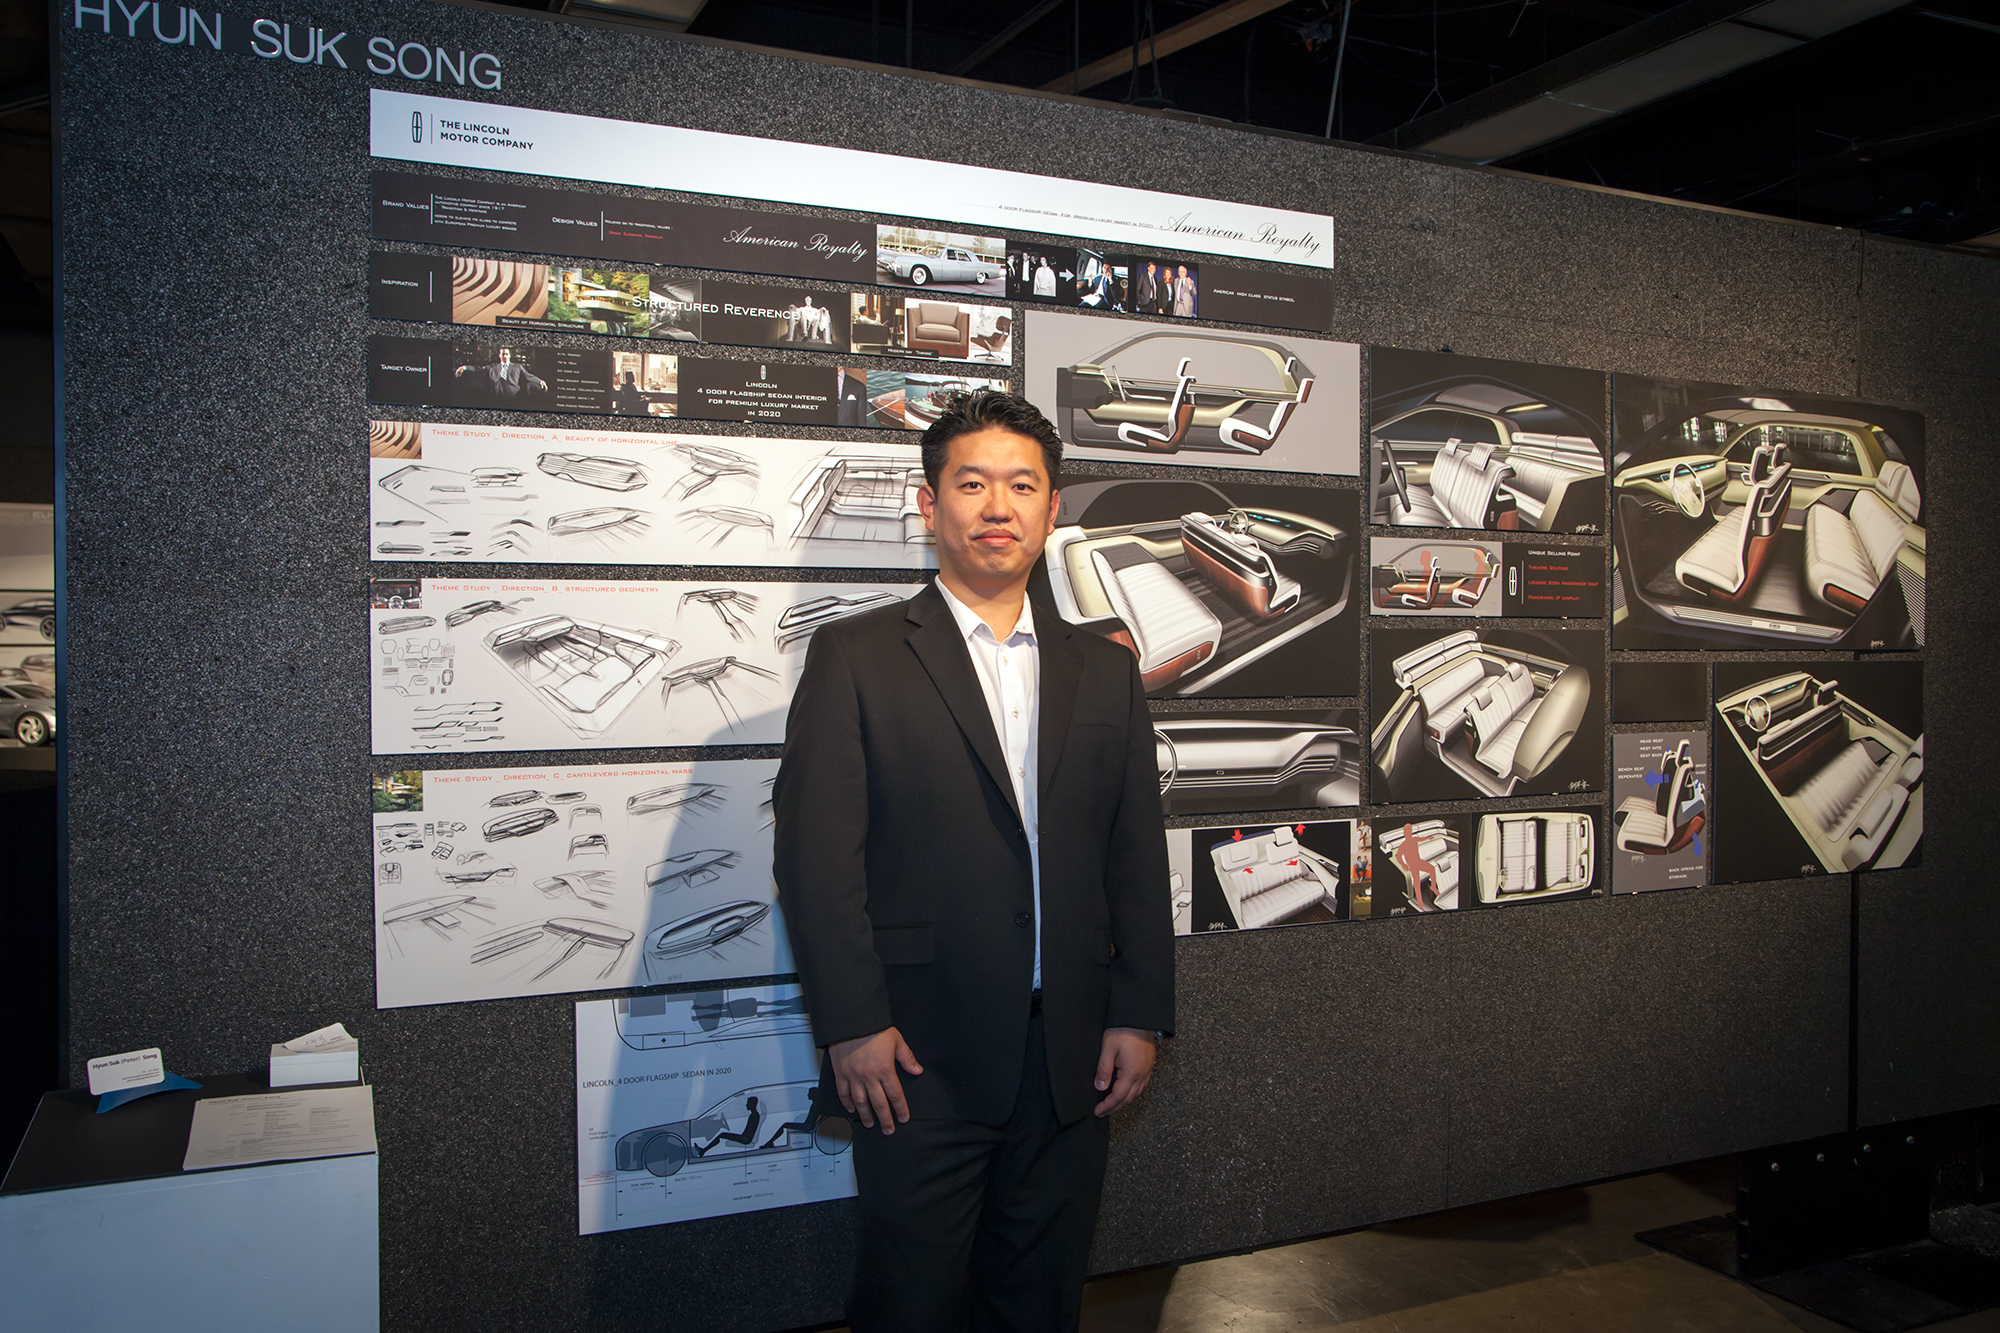 Hyun Suk Song - Transportation Design